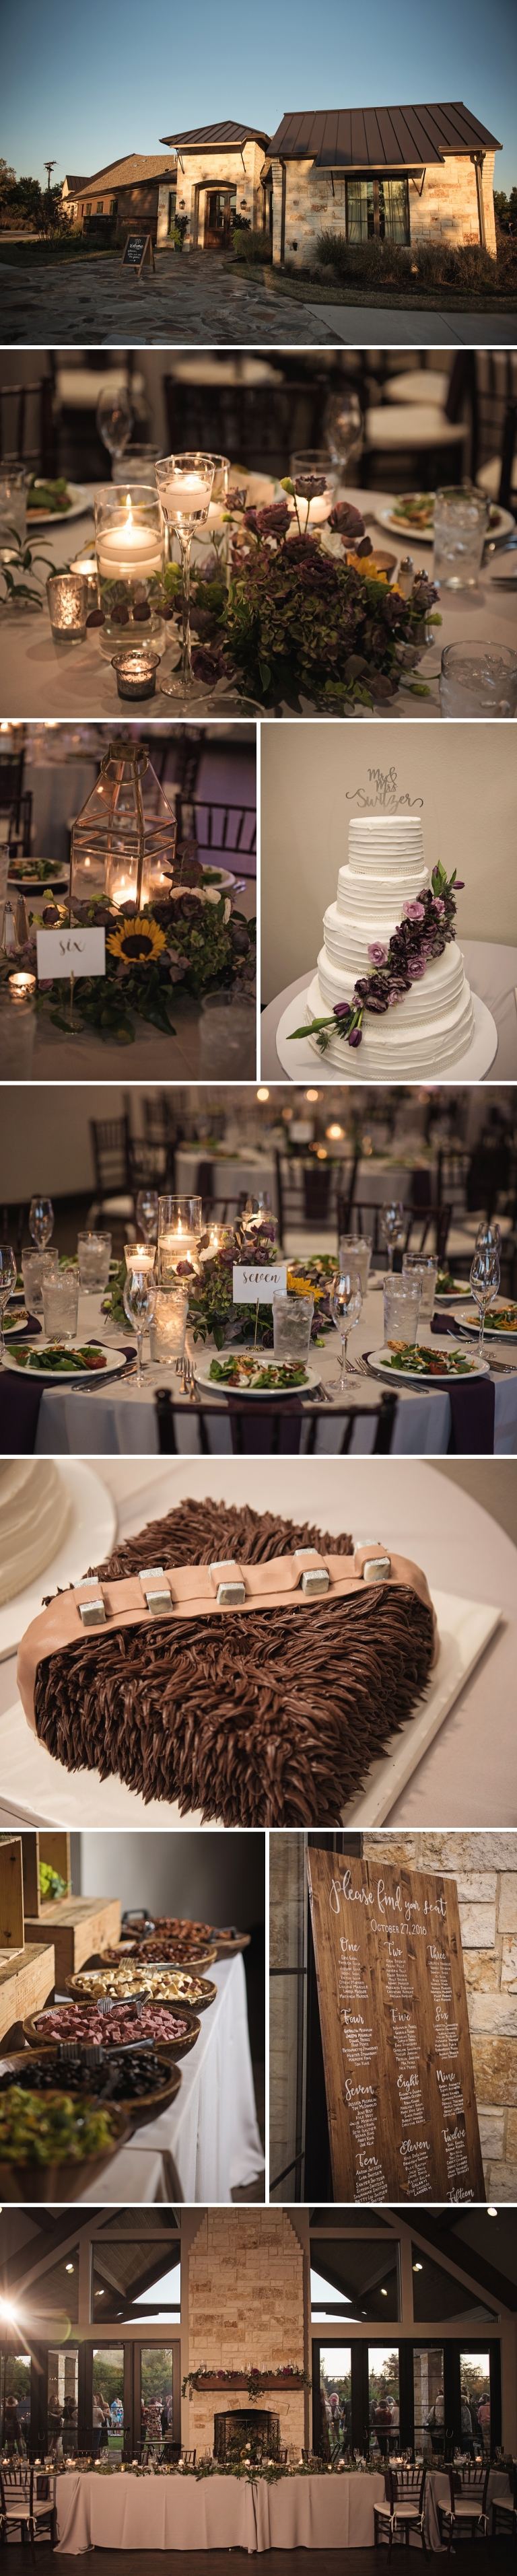 Costumed Wedding at The Laurel in Grapevine